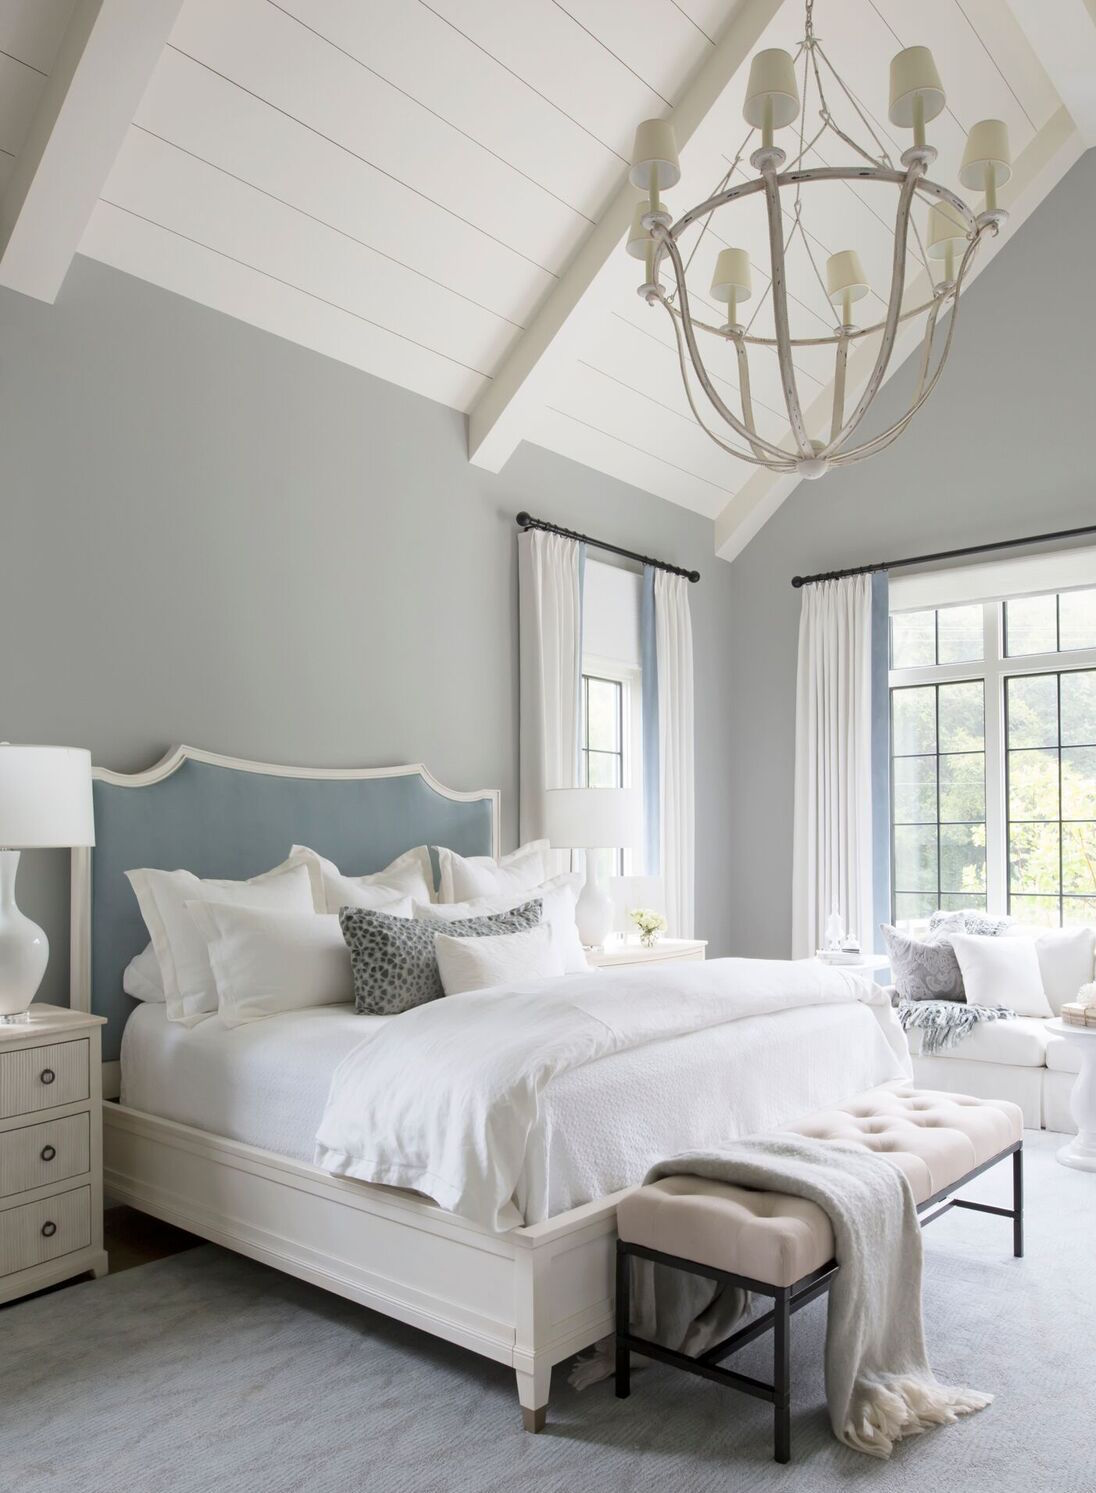 A velvet blue-gray headboard grounds the master bedroom, and sets the tone for its soft, dreamy vibe. Velvet trimwas added to the off-white linen draperies and pillows.